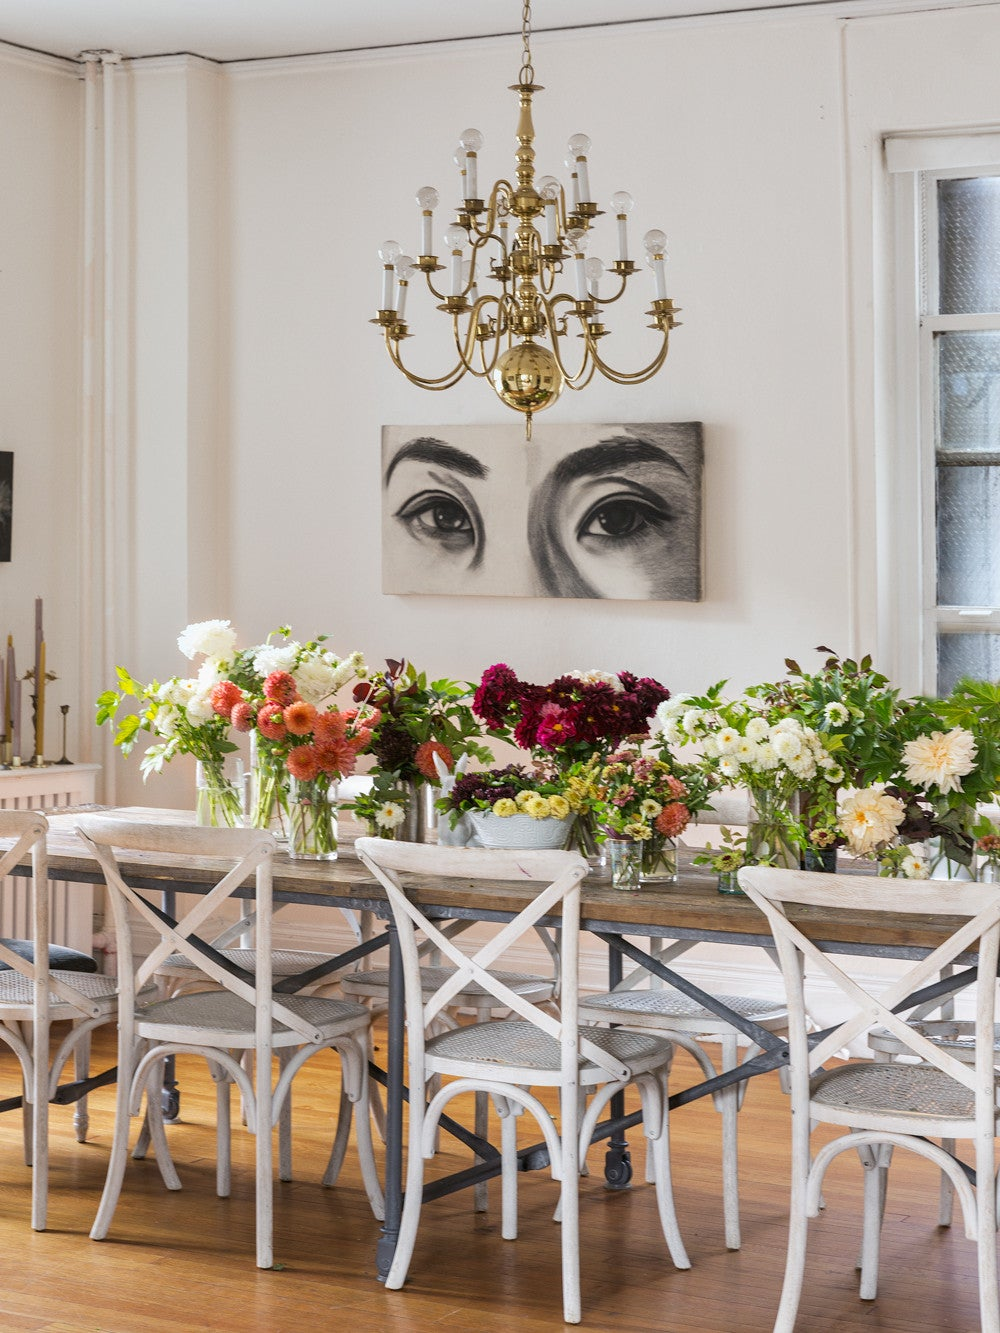 A Rare Look Inside a Home in NYC's Most Exclusive Neighborhood